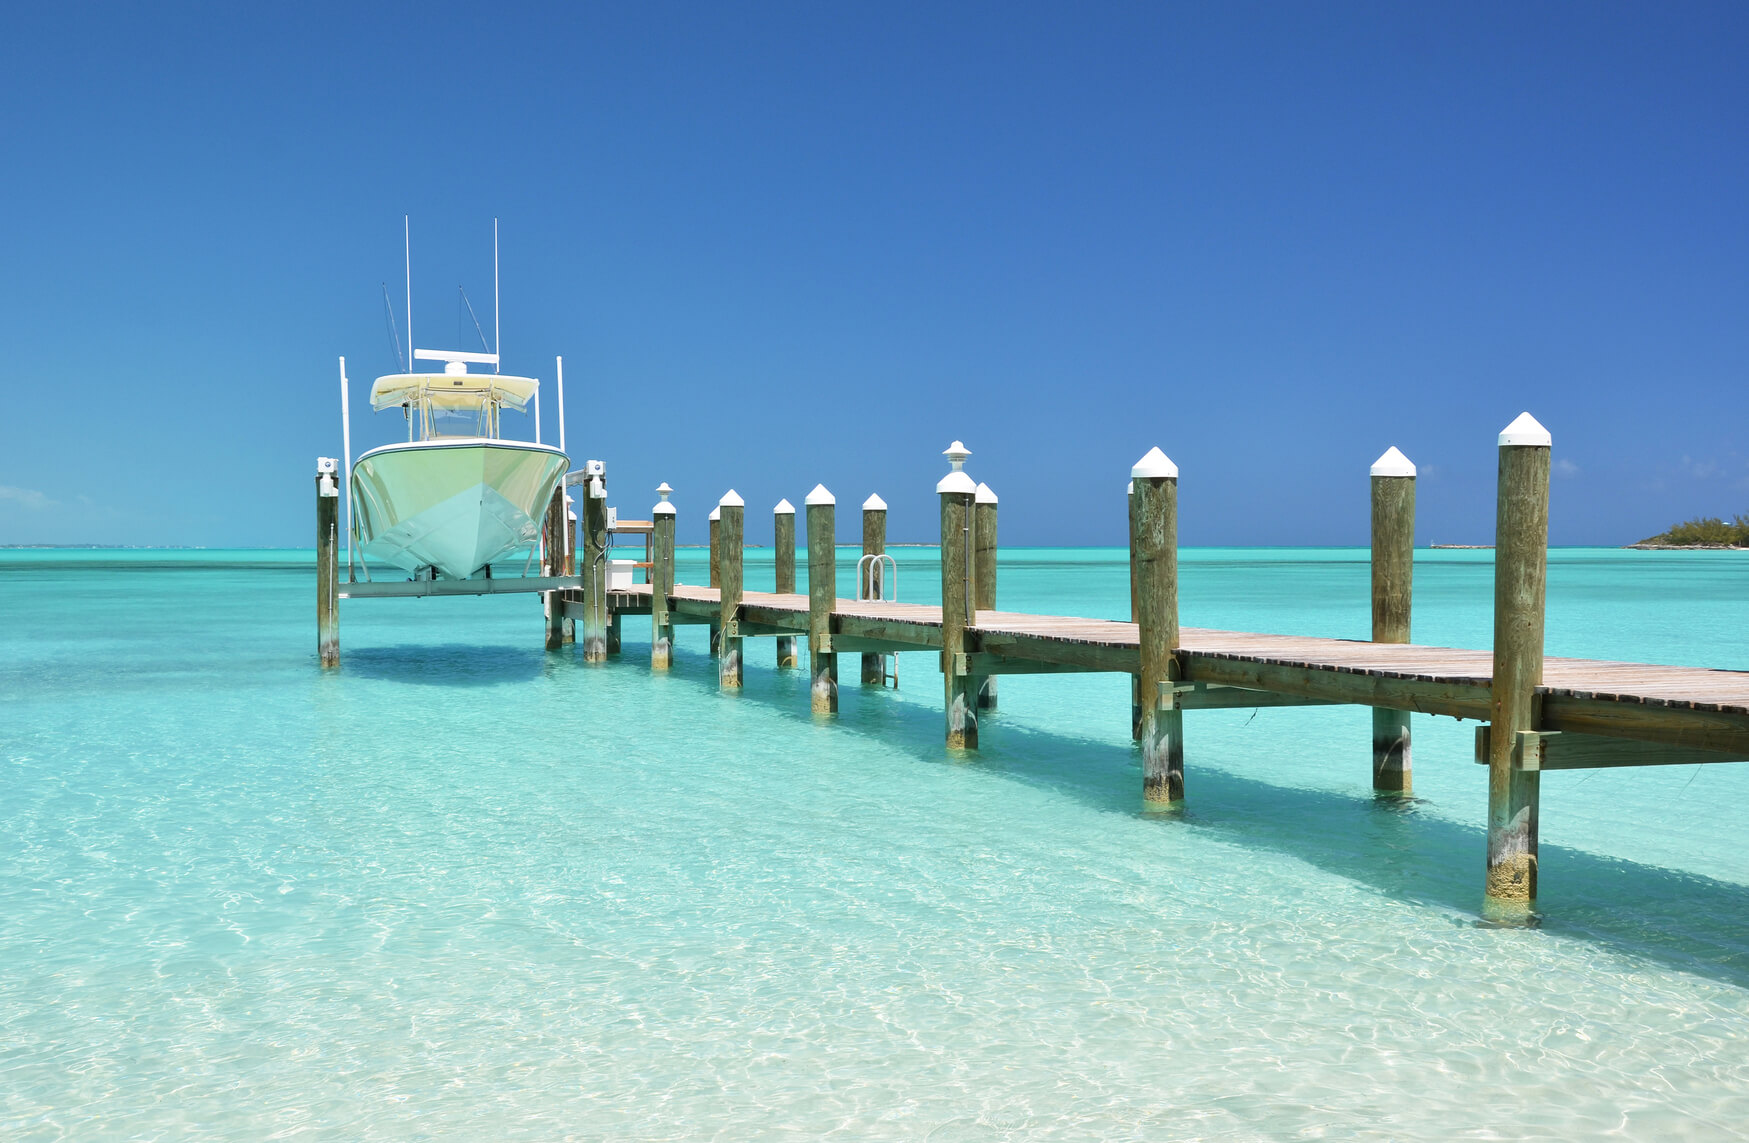 Washington DC to the Bahamas for only $272 roundtrip